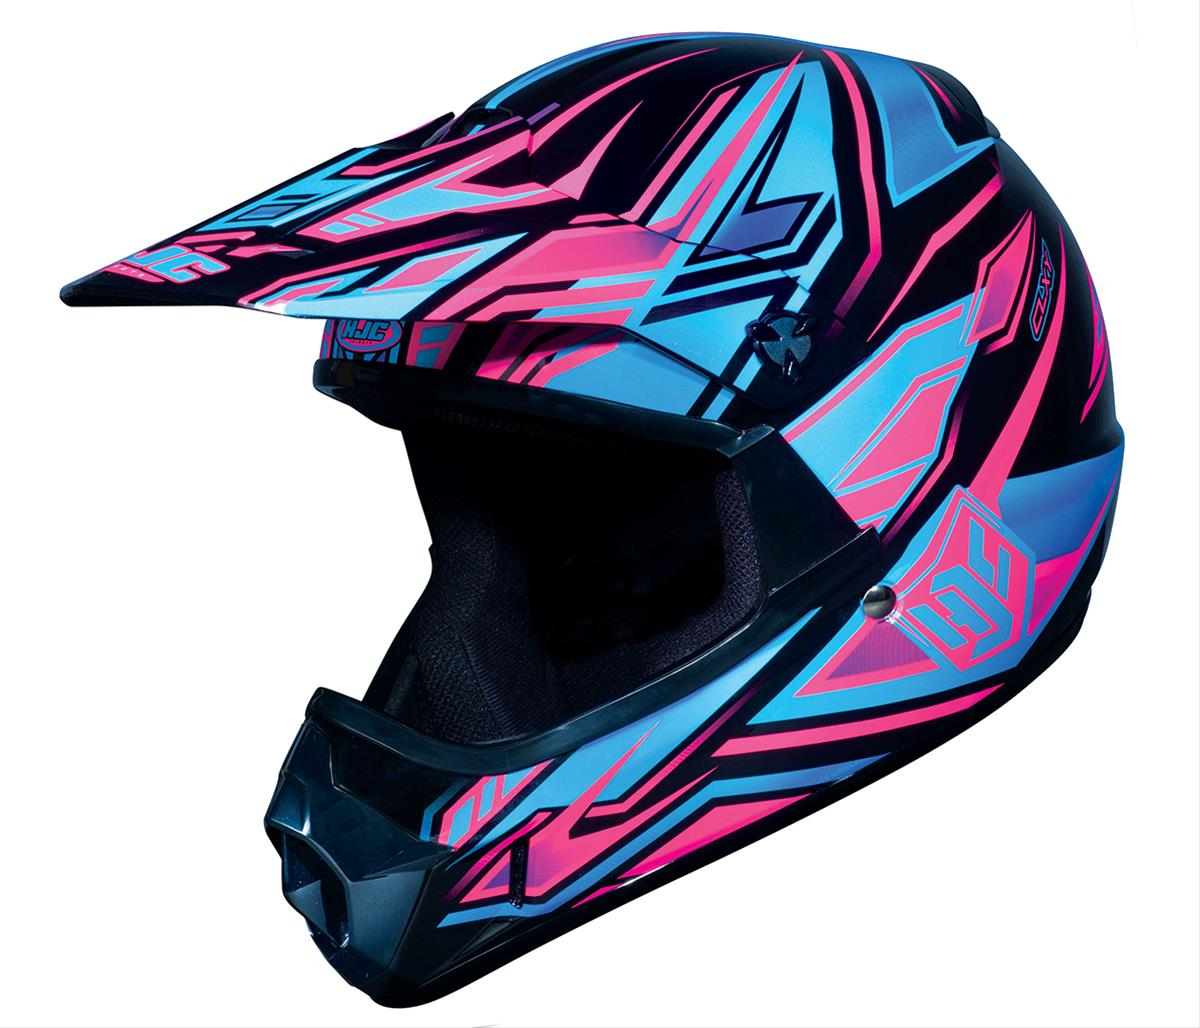 Summit Racing Helmets >> HJC CL-XY Helmets 278-984 - Free Shipping on Orders Over $99 at Summit Racing